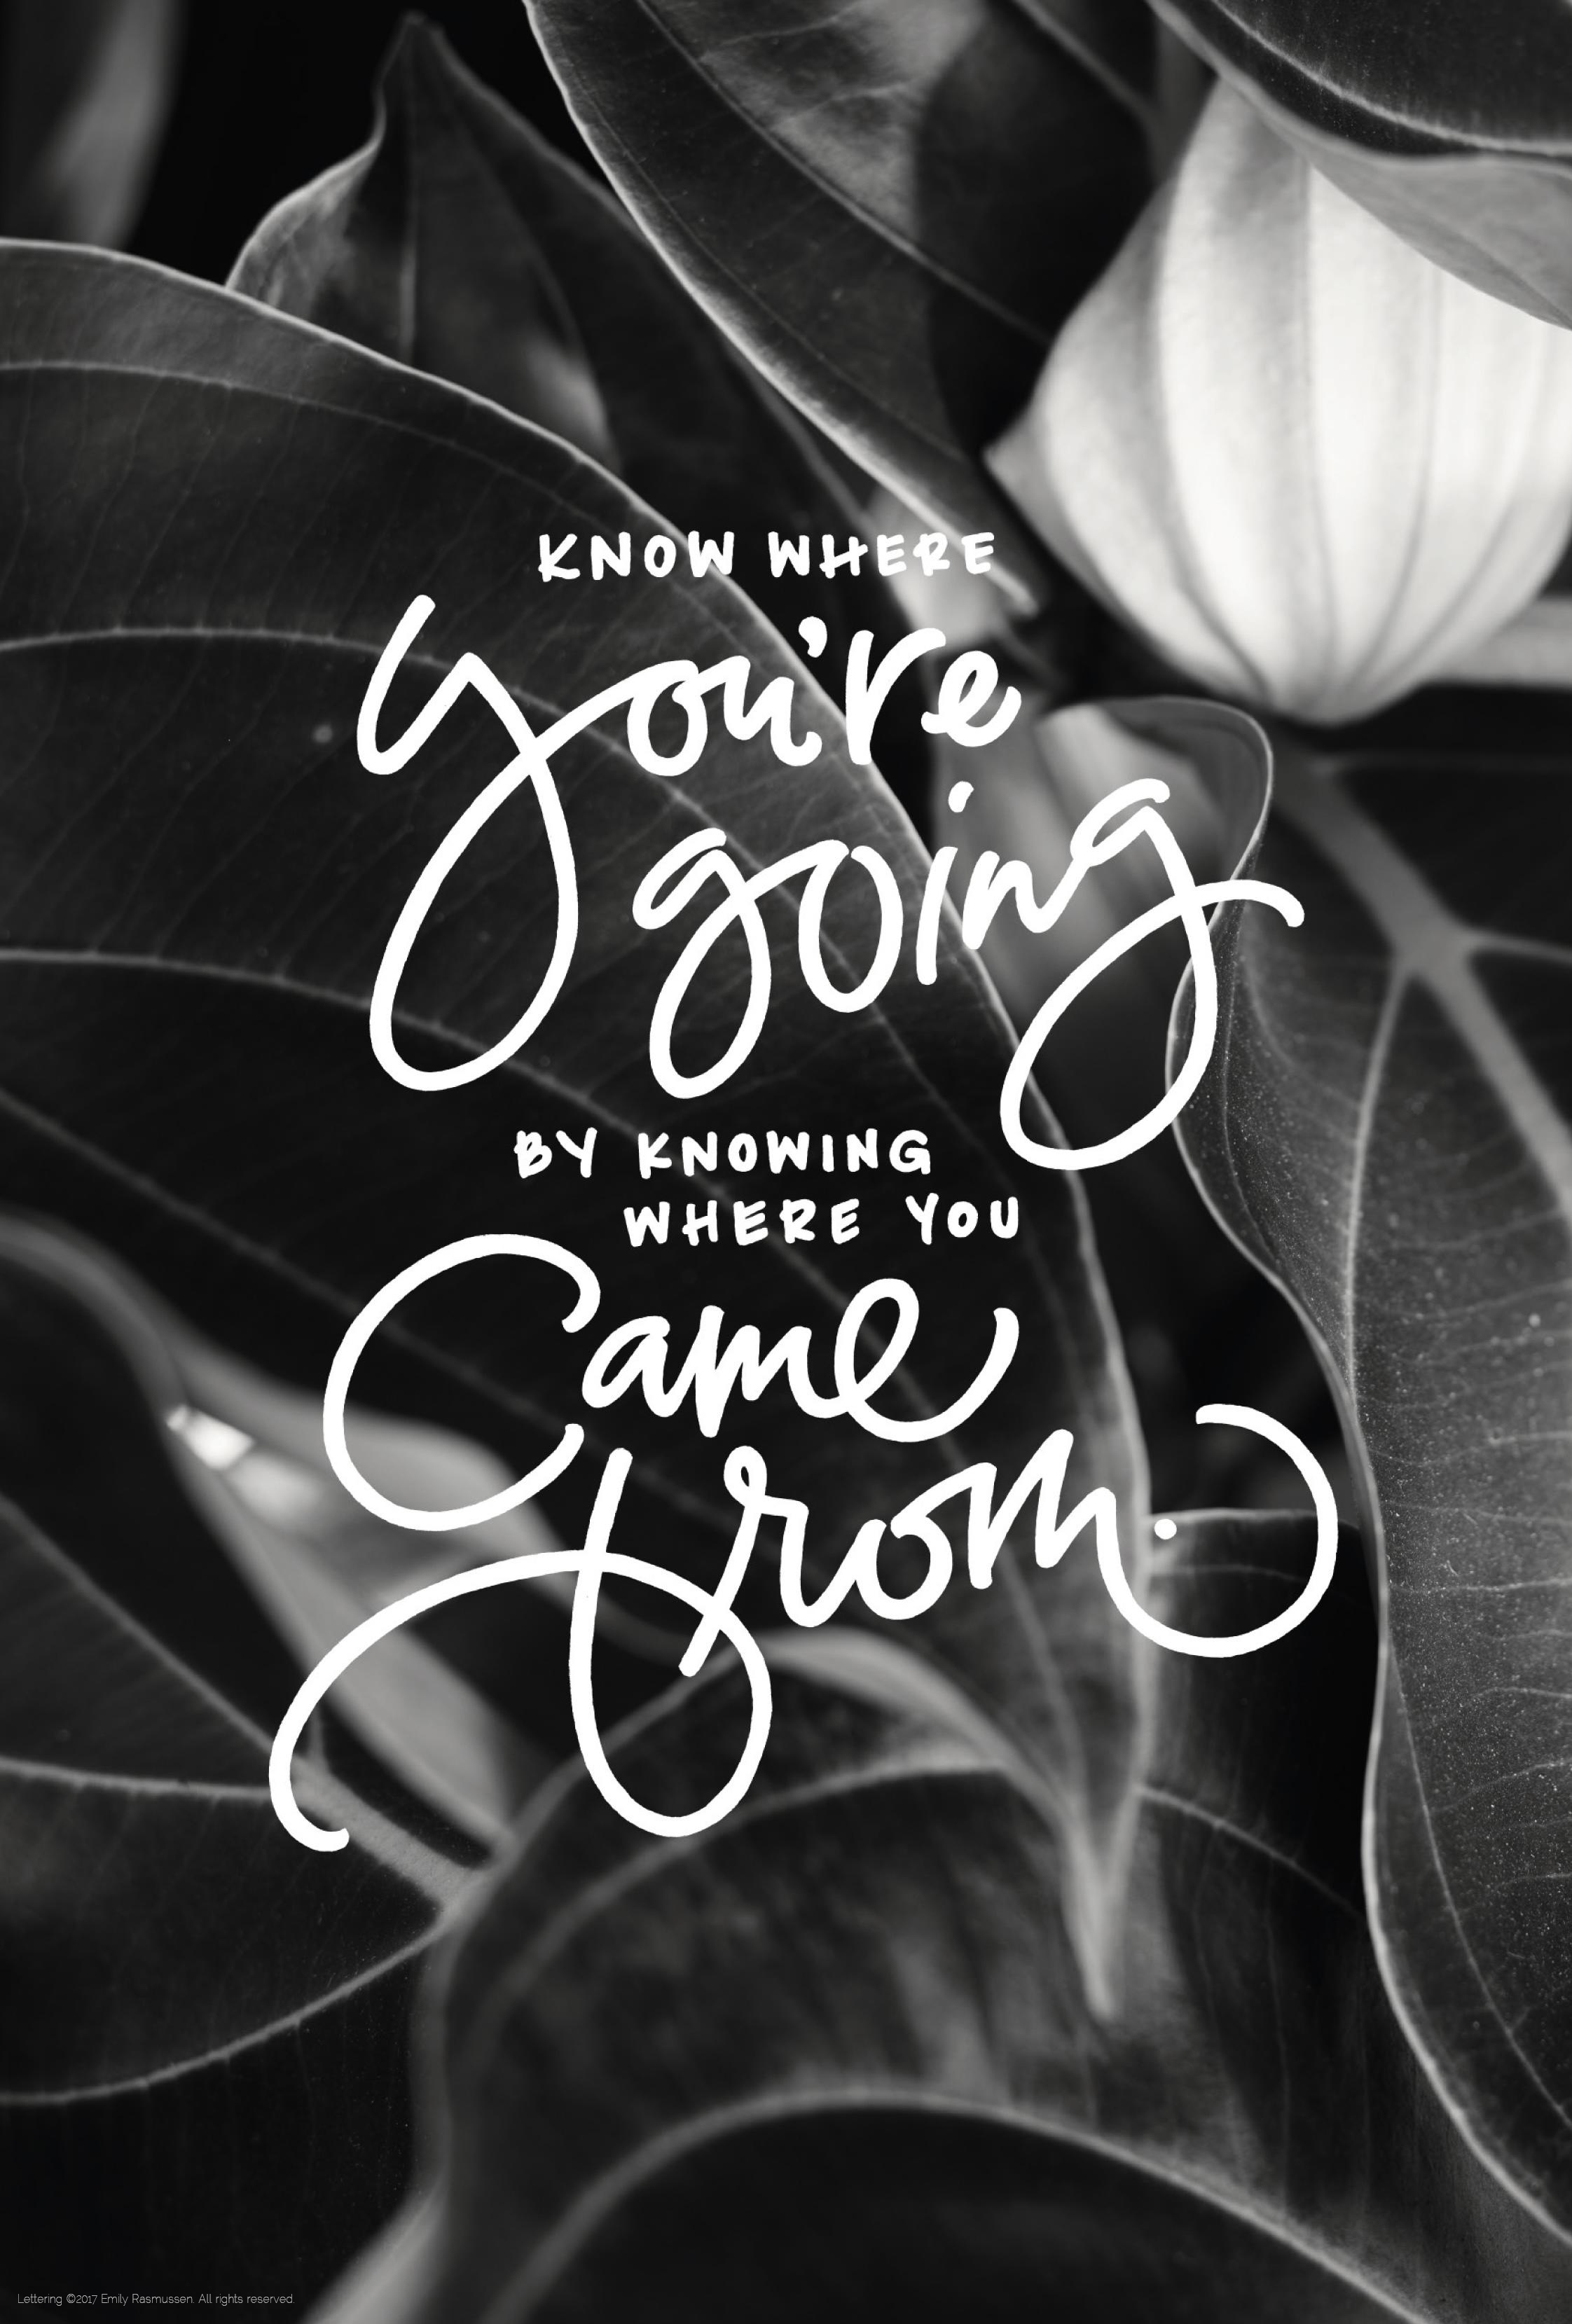 Hand-lettered quote in white over black and white plant photography